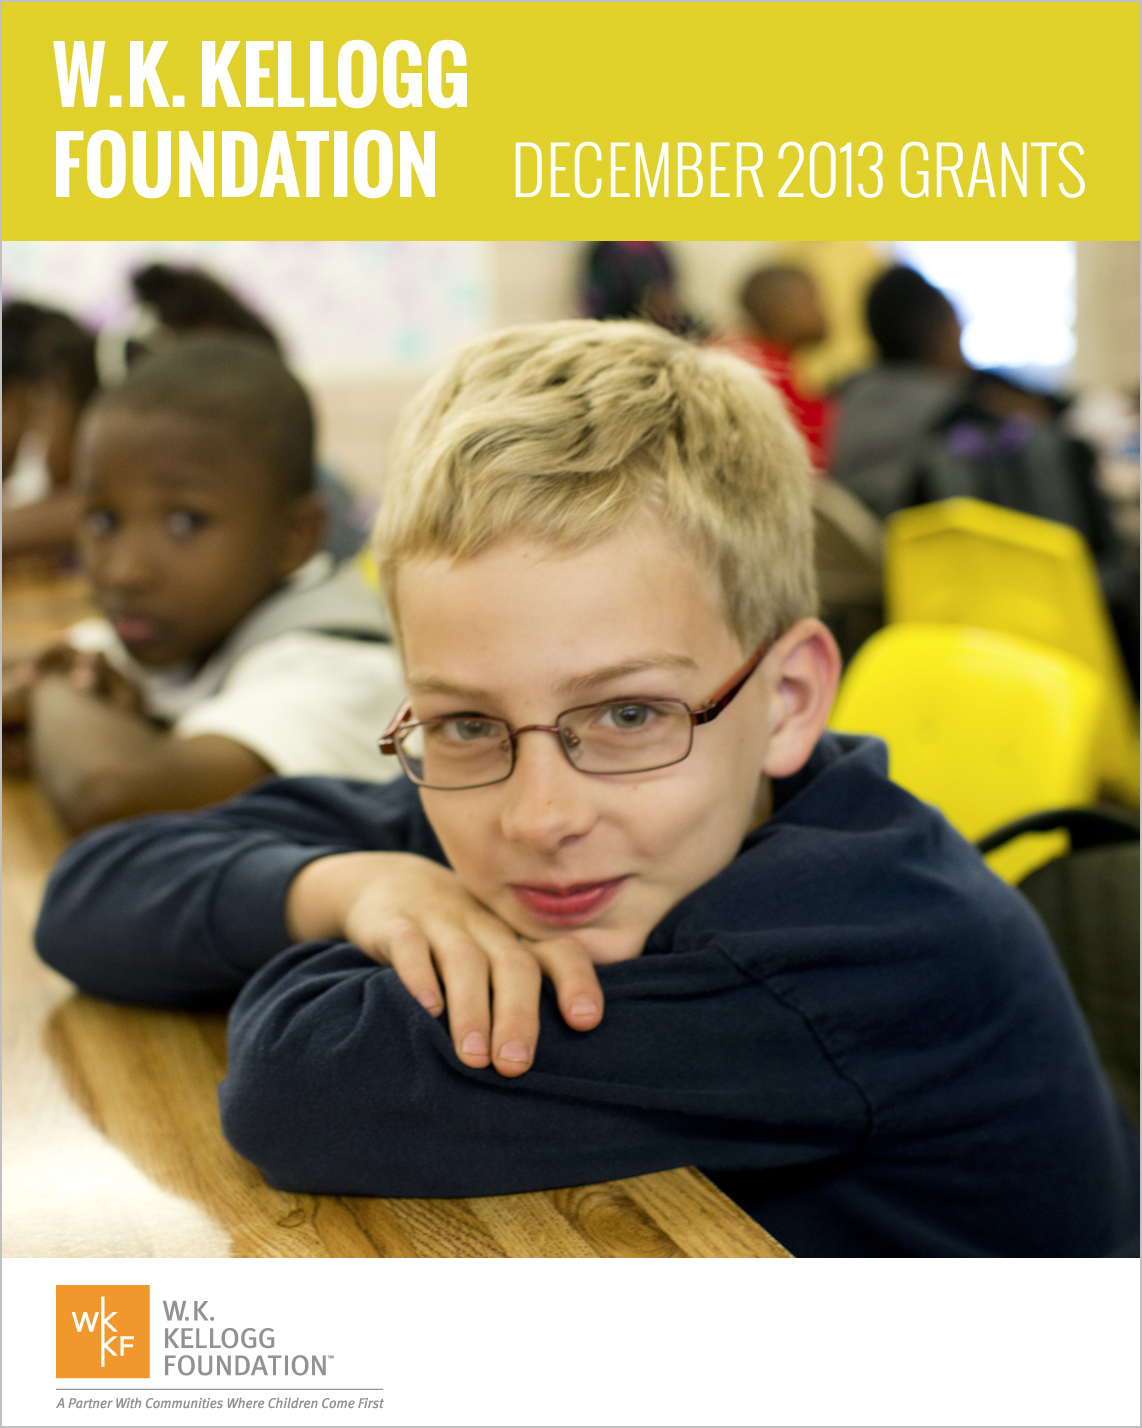 W.K. Kellogg Foundation Grants - December 2013